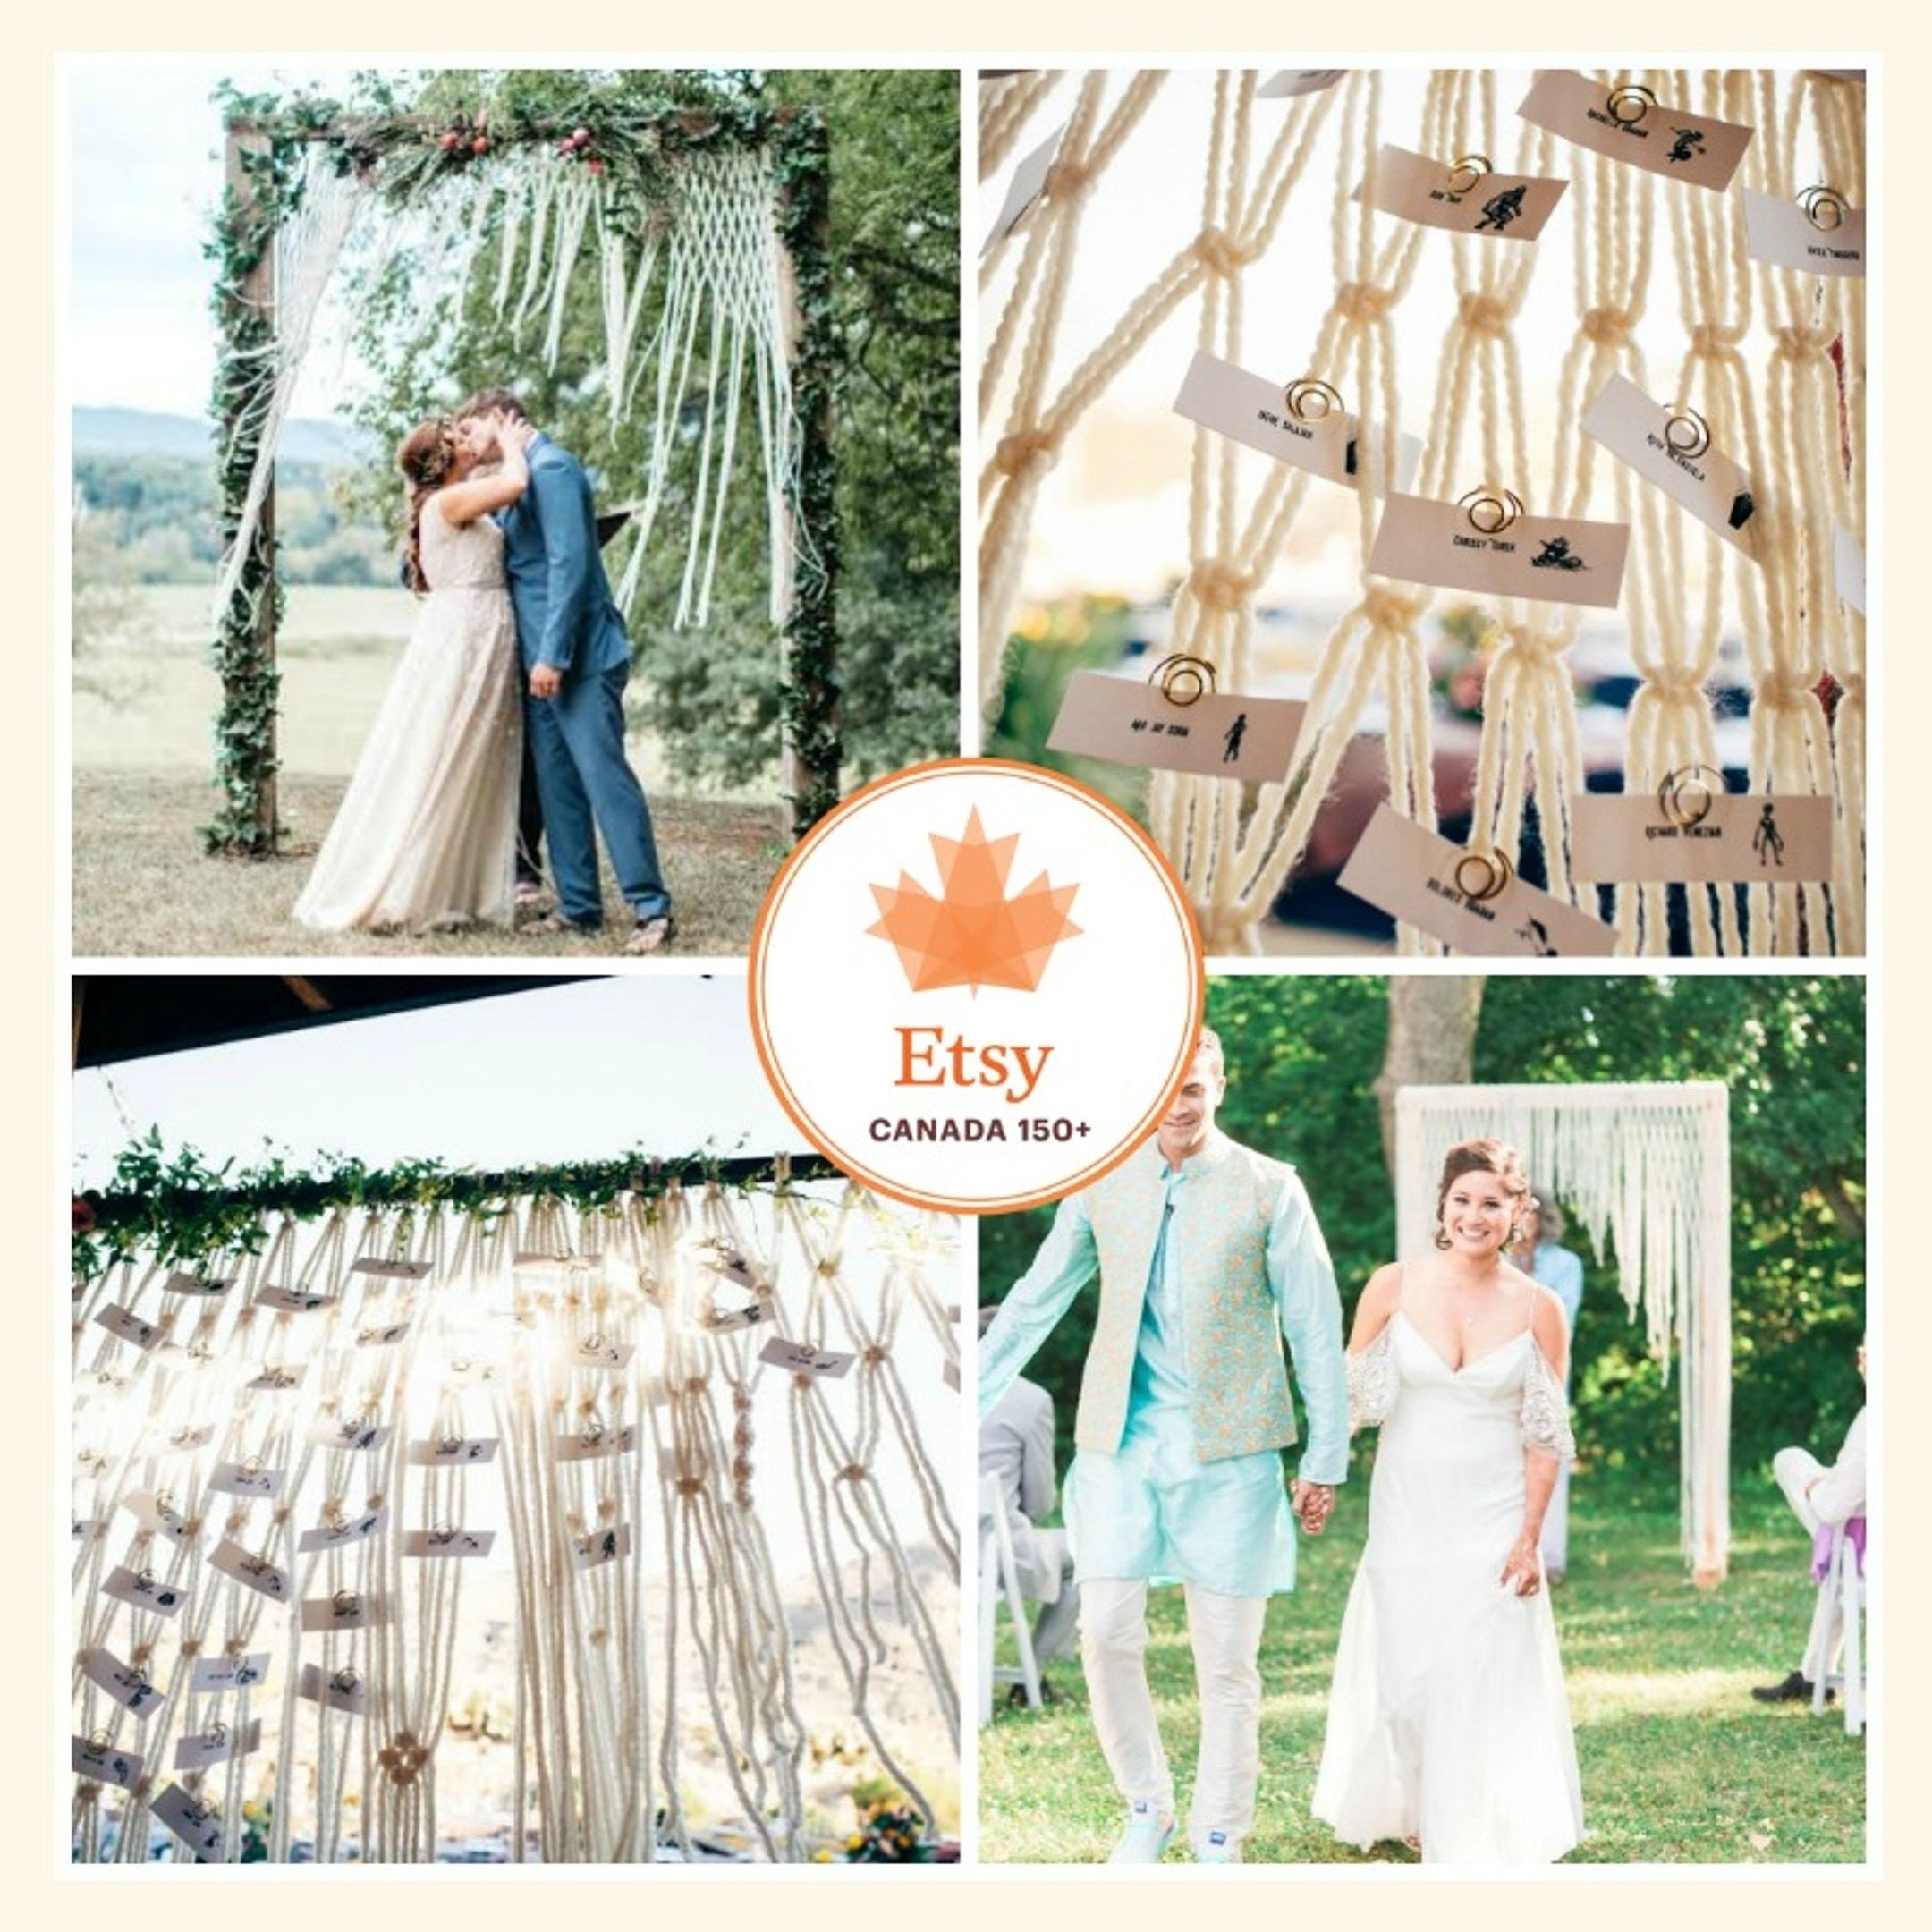 Wedding Altar Etsy: Macrame Altar Hanging For Rustic Outdoor Wedding Ceremony